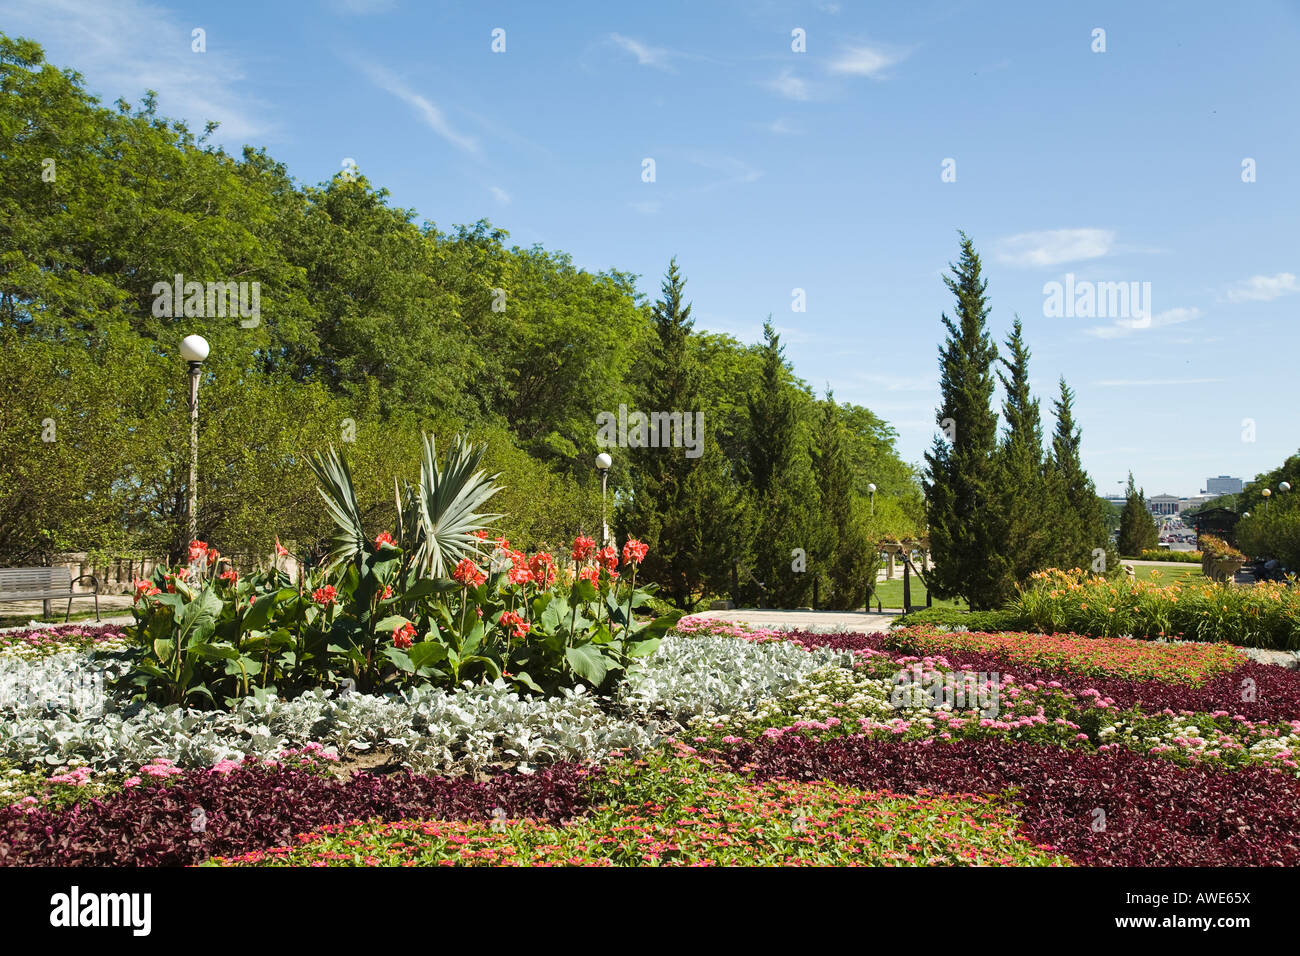 ILLINOIS Chicago Flowers blooming in Cancer Survivors Garden in Grant Park - Stock Image